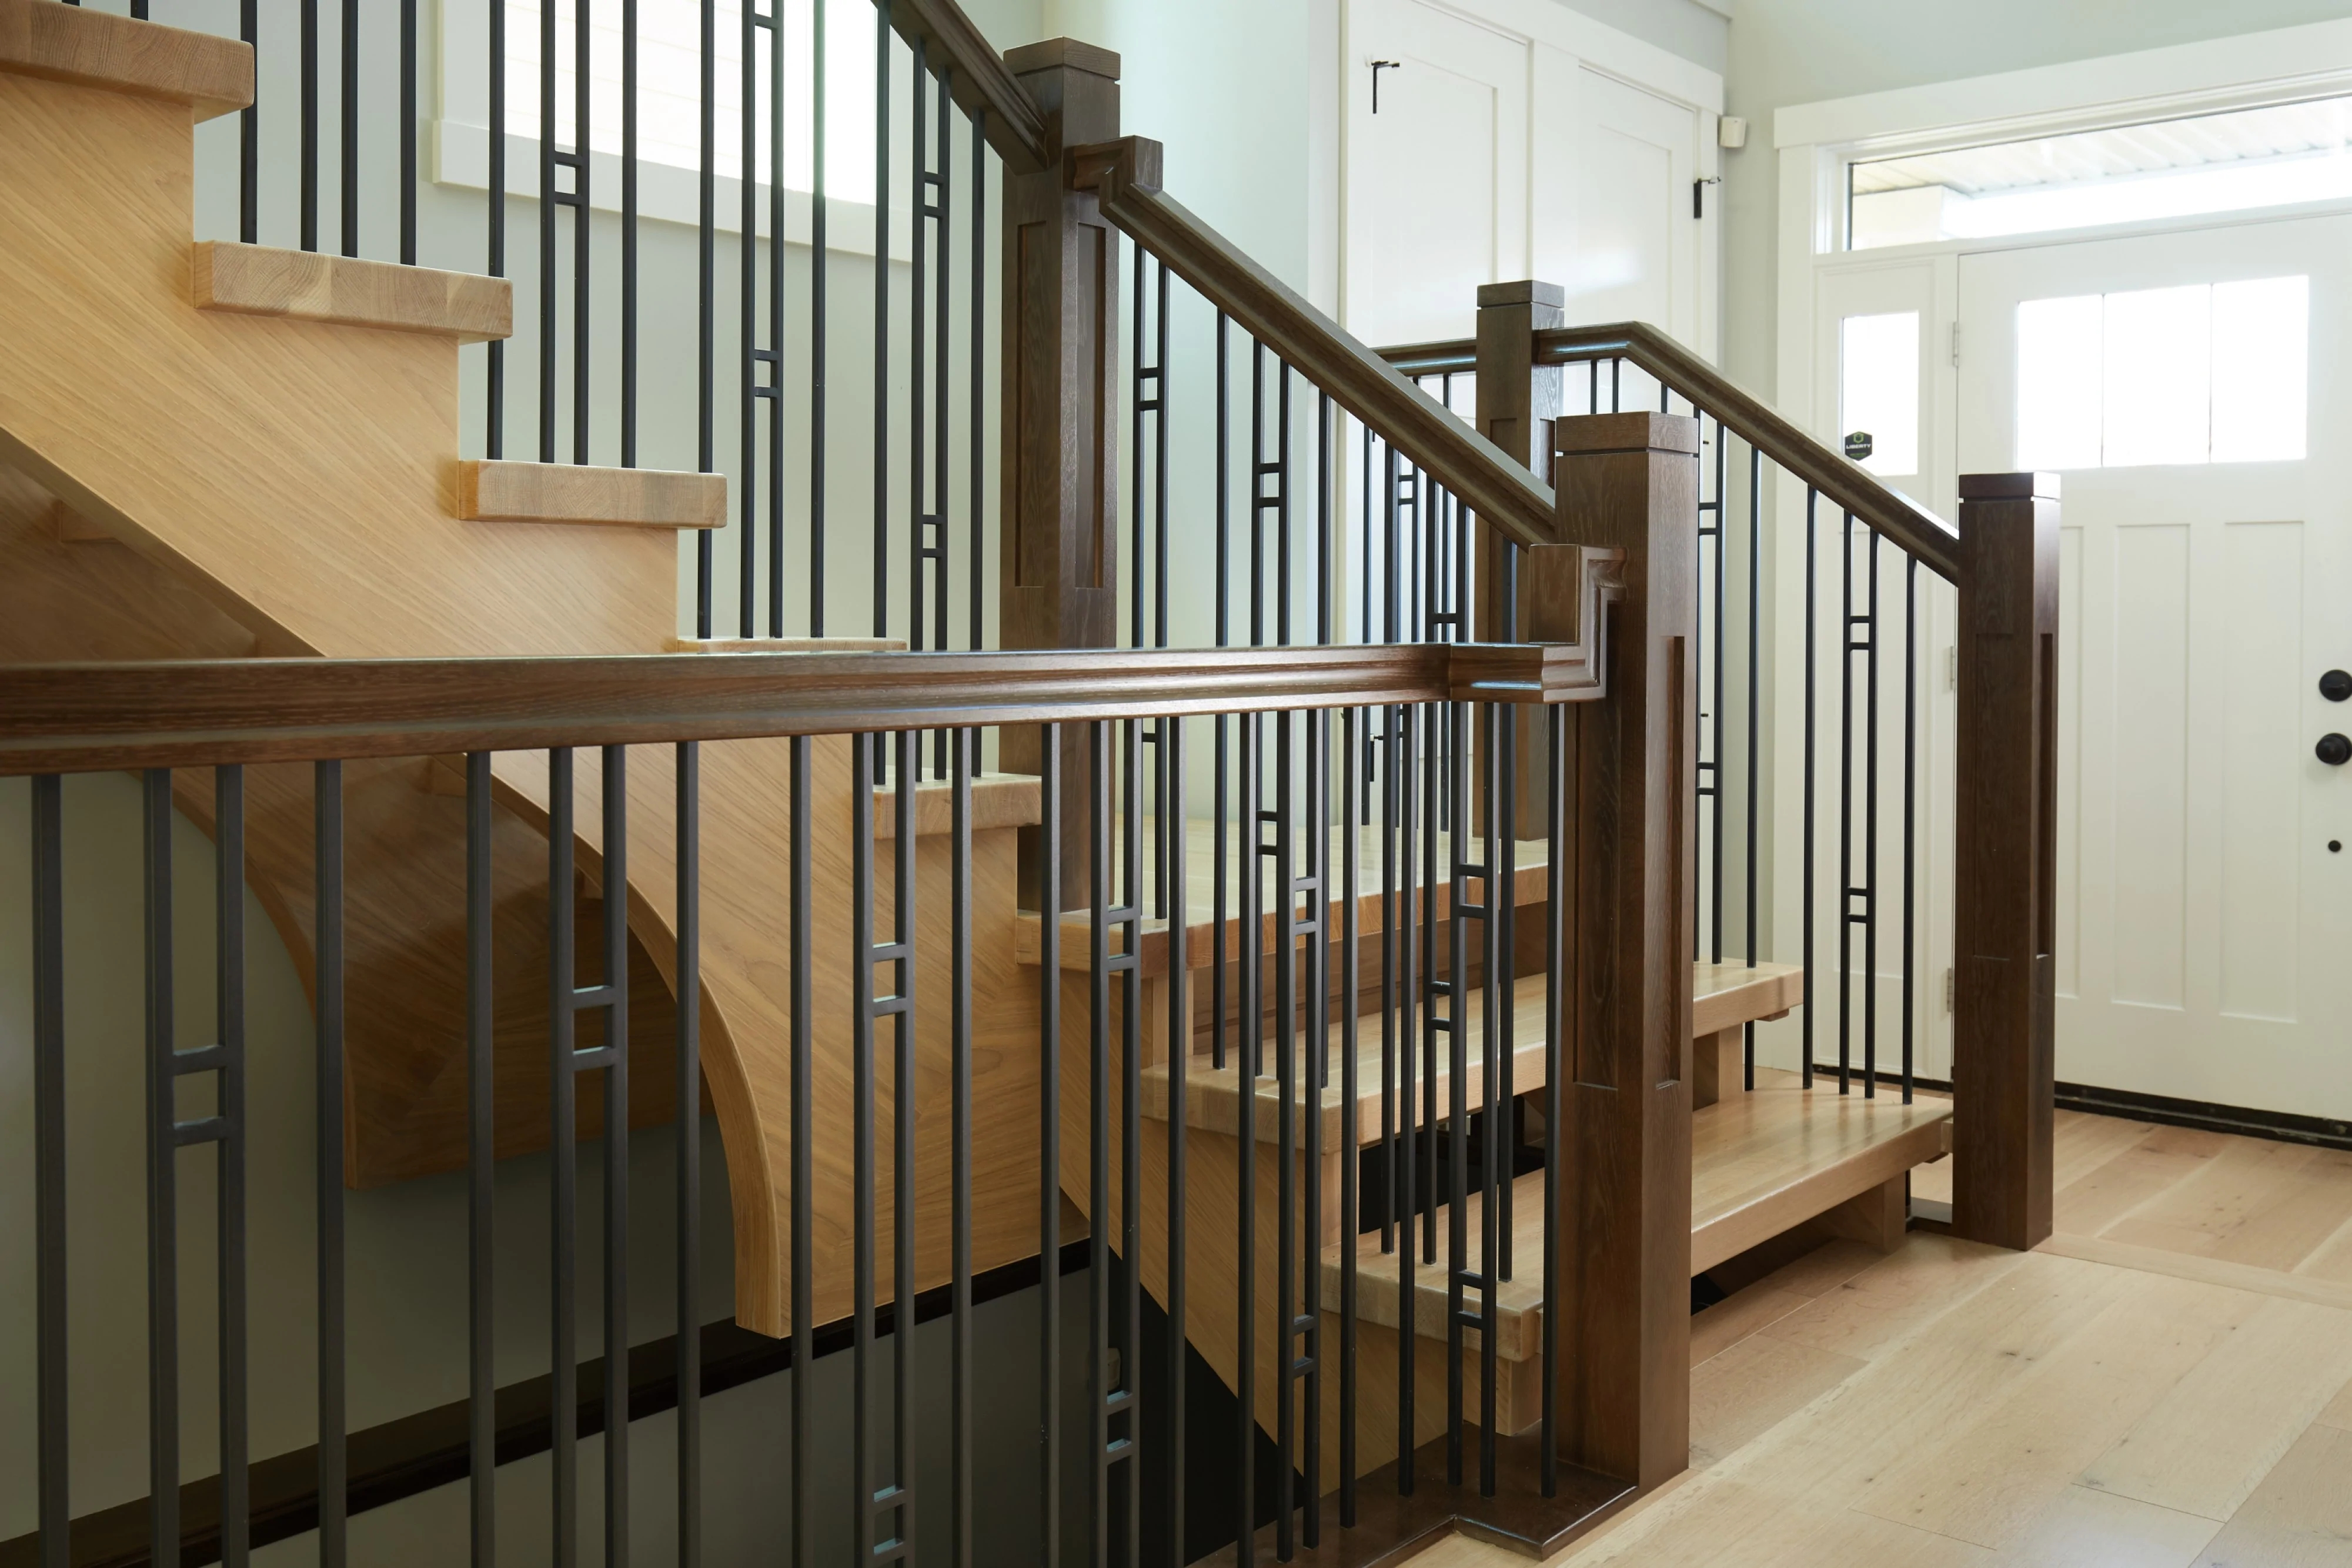 Custom Newel Posts Stair Posts Railing Products For Every Style   Shaker Style Newel Post   Shingle Style   Baluster   Pressure Treated   Square   Railing